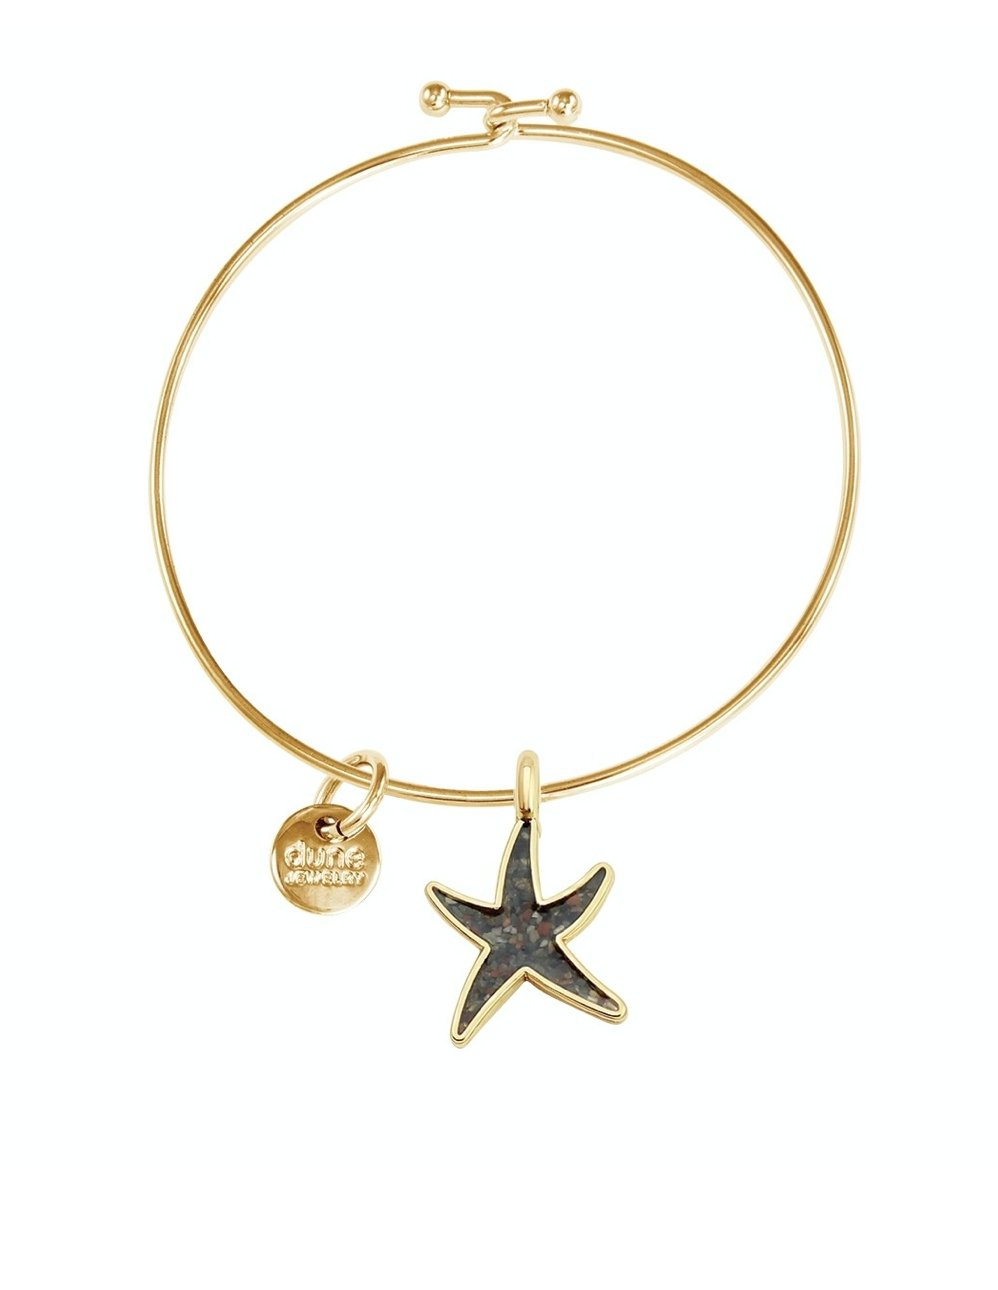 BANGG31 BANGLE STARFISH GOLD - Molly's! A Chic and Unique Boutique